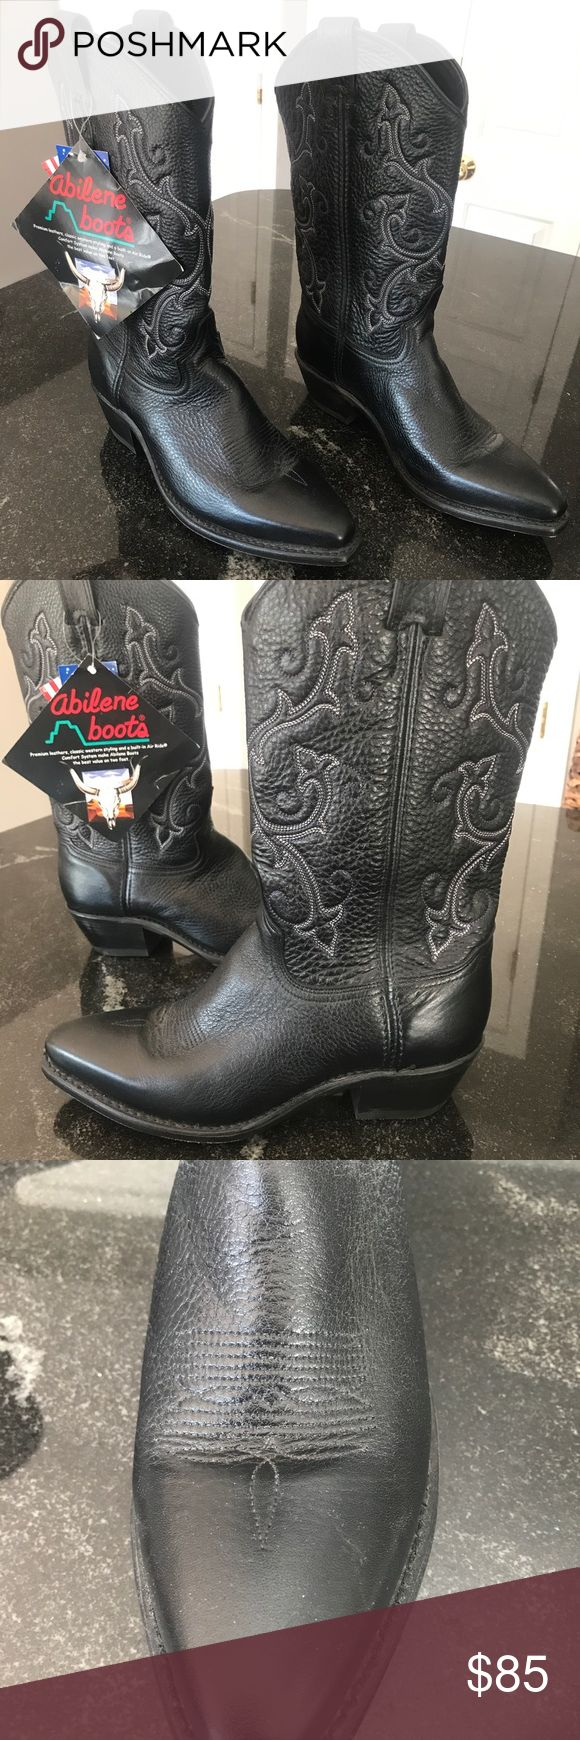 Abilene cowboy boots Brand new with tags Abilene cowboy boots! Never worn! Still with original box! Classic black with beautiful scroll work with a hint of purple and white stitching. abilene Shoes Heeled Boots